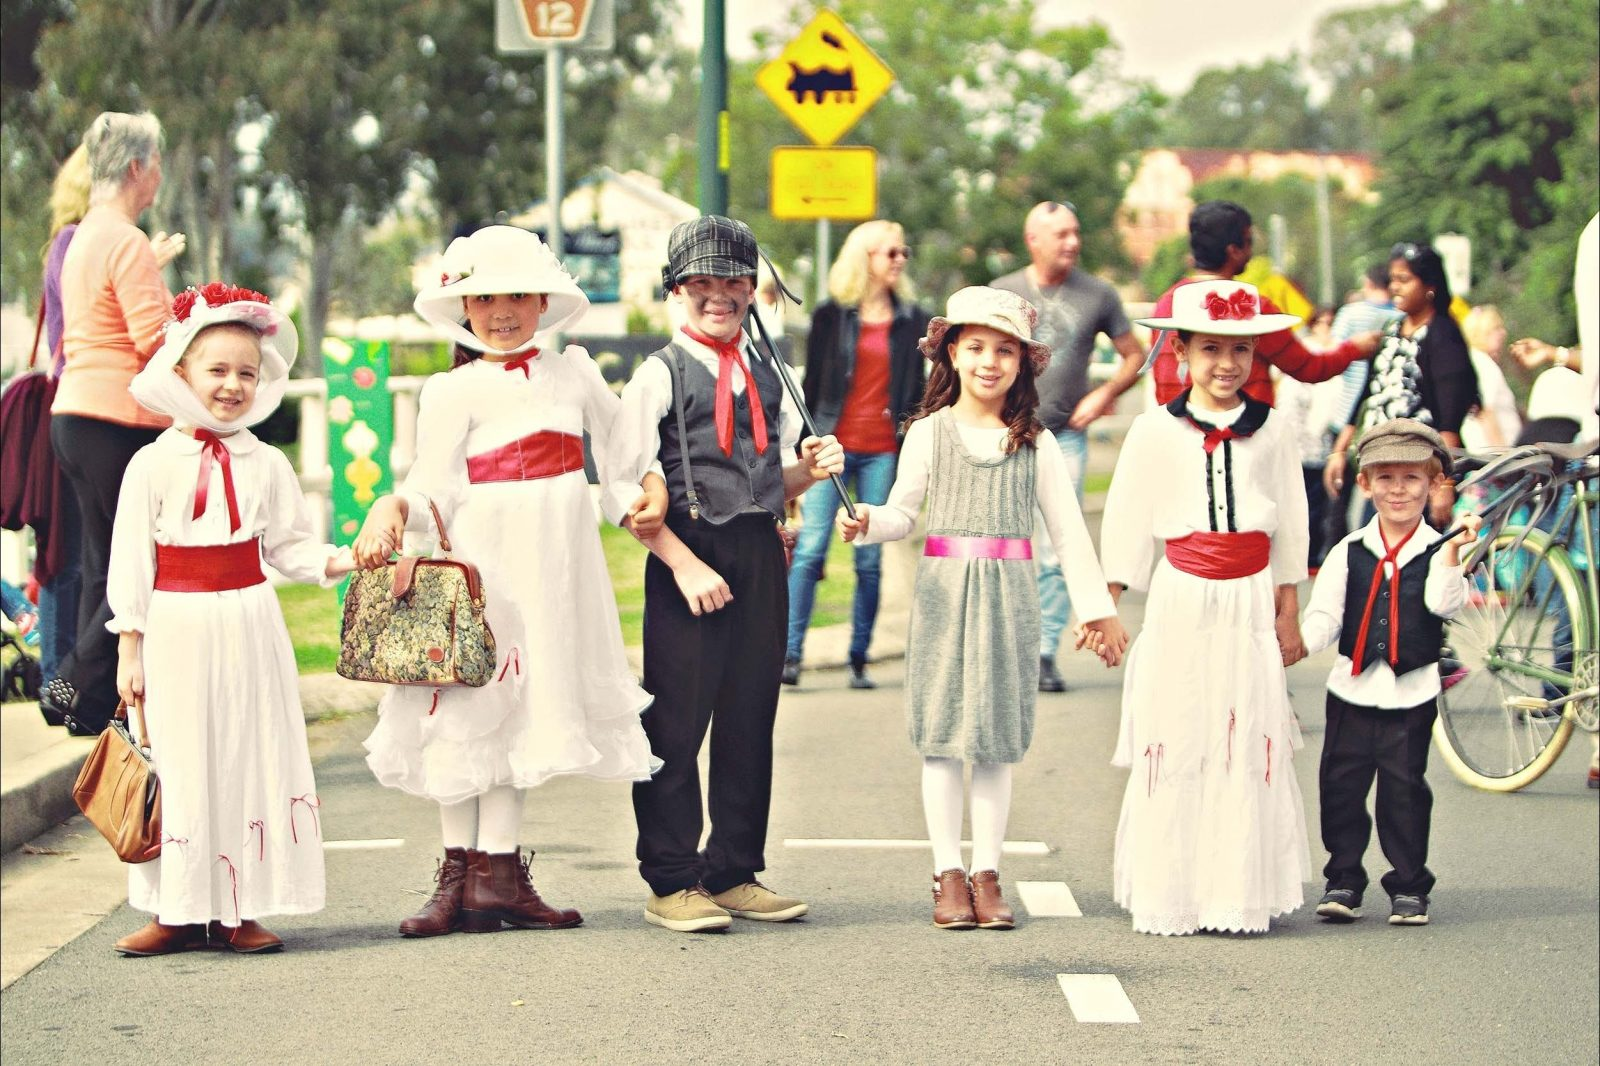 Mary Poppins Festival in the Park